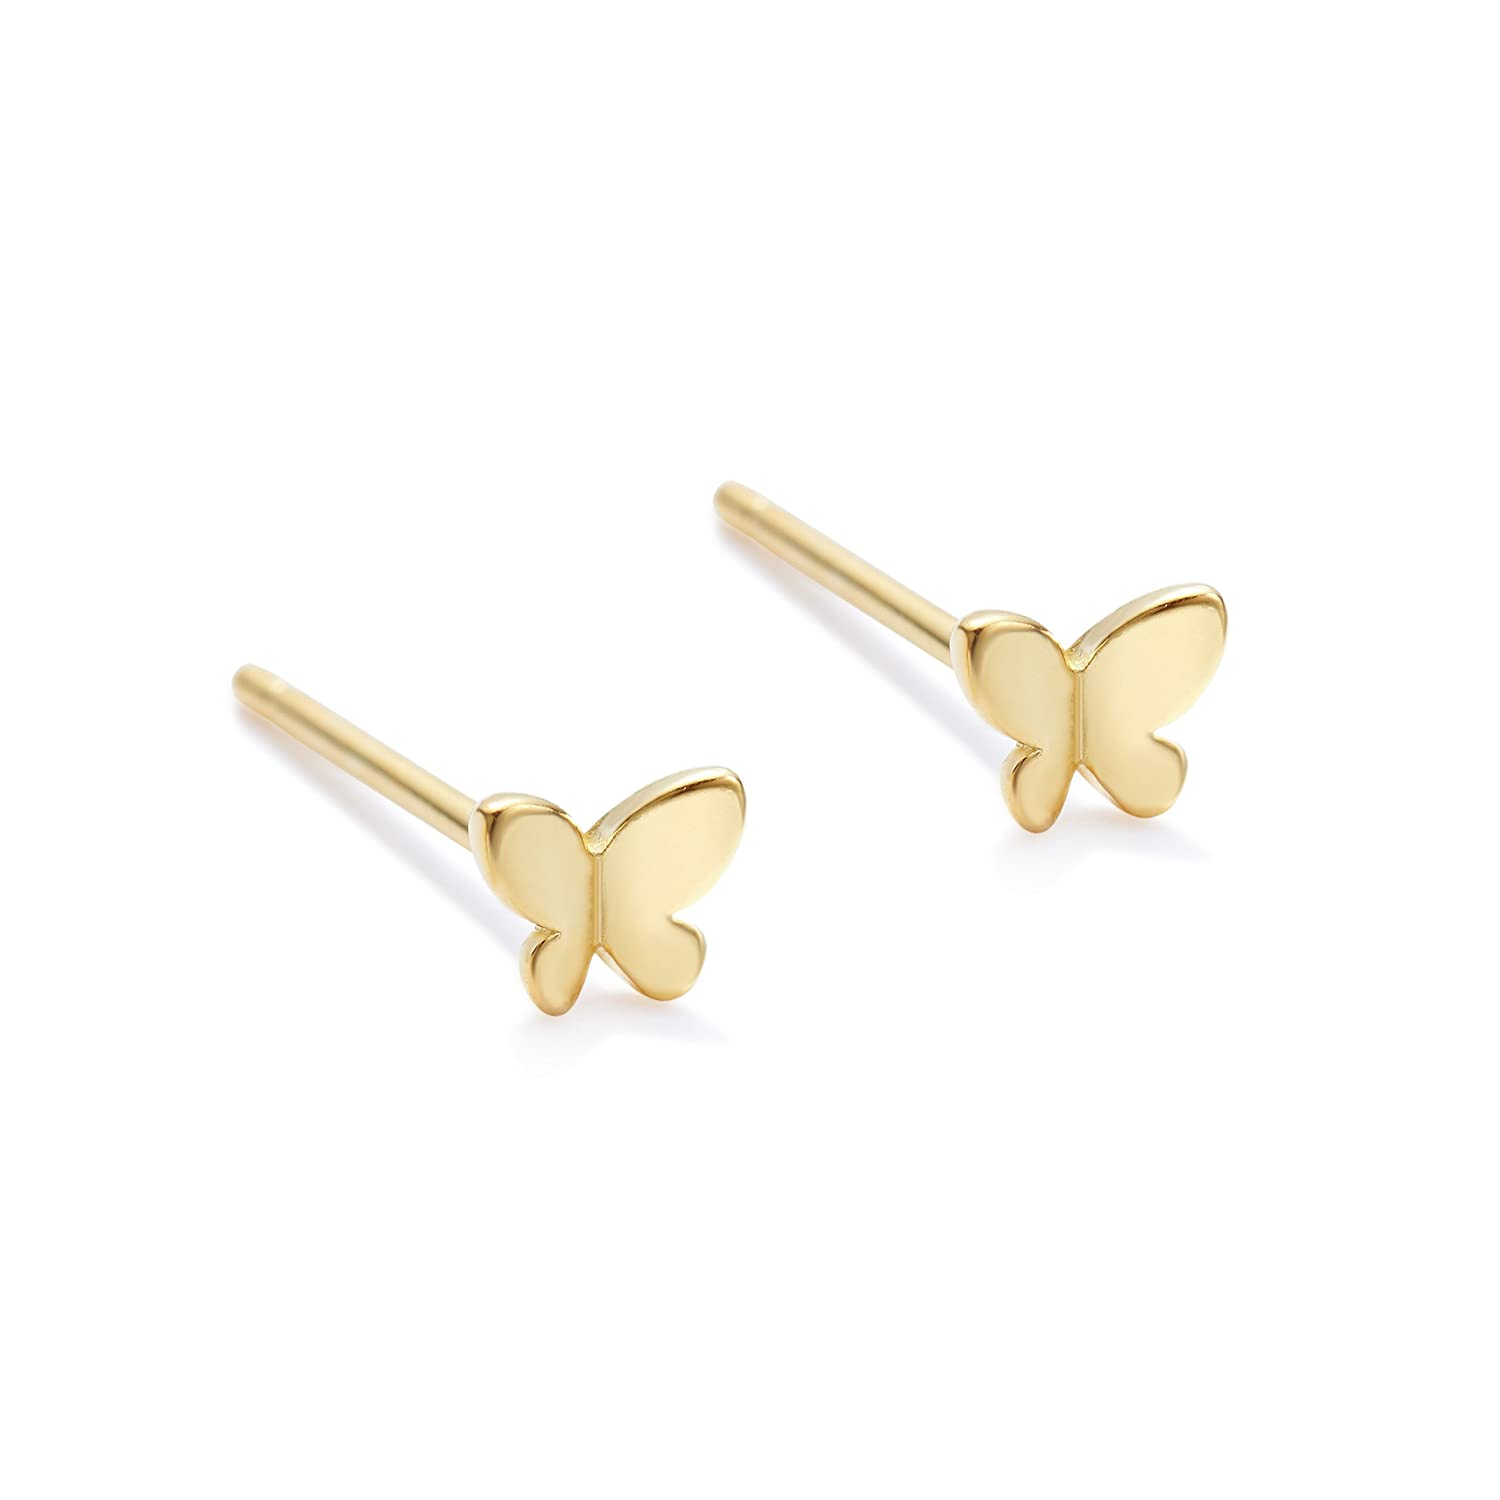 3b2165a7b Amazon.com: Sterling Silver Tiny Butterfly Stud Earrings Mini Gold  Butterfly Hypoallergenic Earrings Girls: Jewelry